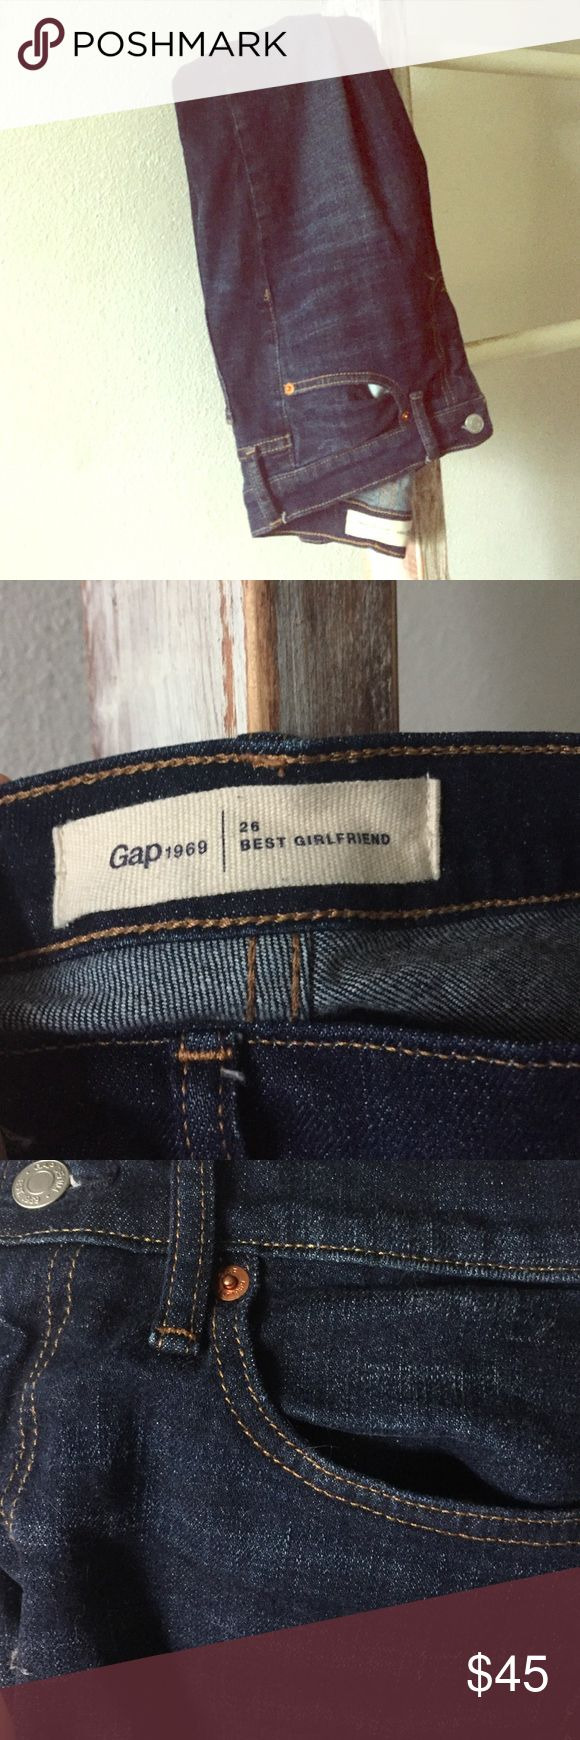 GAP denim (worn once) Almost new GAP denim. Premium, vintage-inspired denim with just a bit of stretch. Dark indigo wash with subtle fading and whiskering. Zip fly, button closure. Five-pocket styling. Fit: Easy through the hip and thigh. Cut: Mid rise. Leg opening: Slim, skims the ankle. Spandex 1% Cotton 99% GAP Jeans Ankle & Cropped